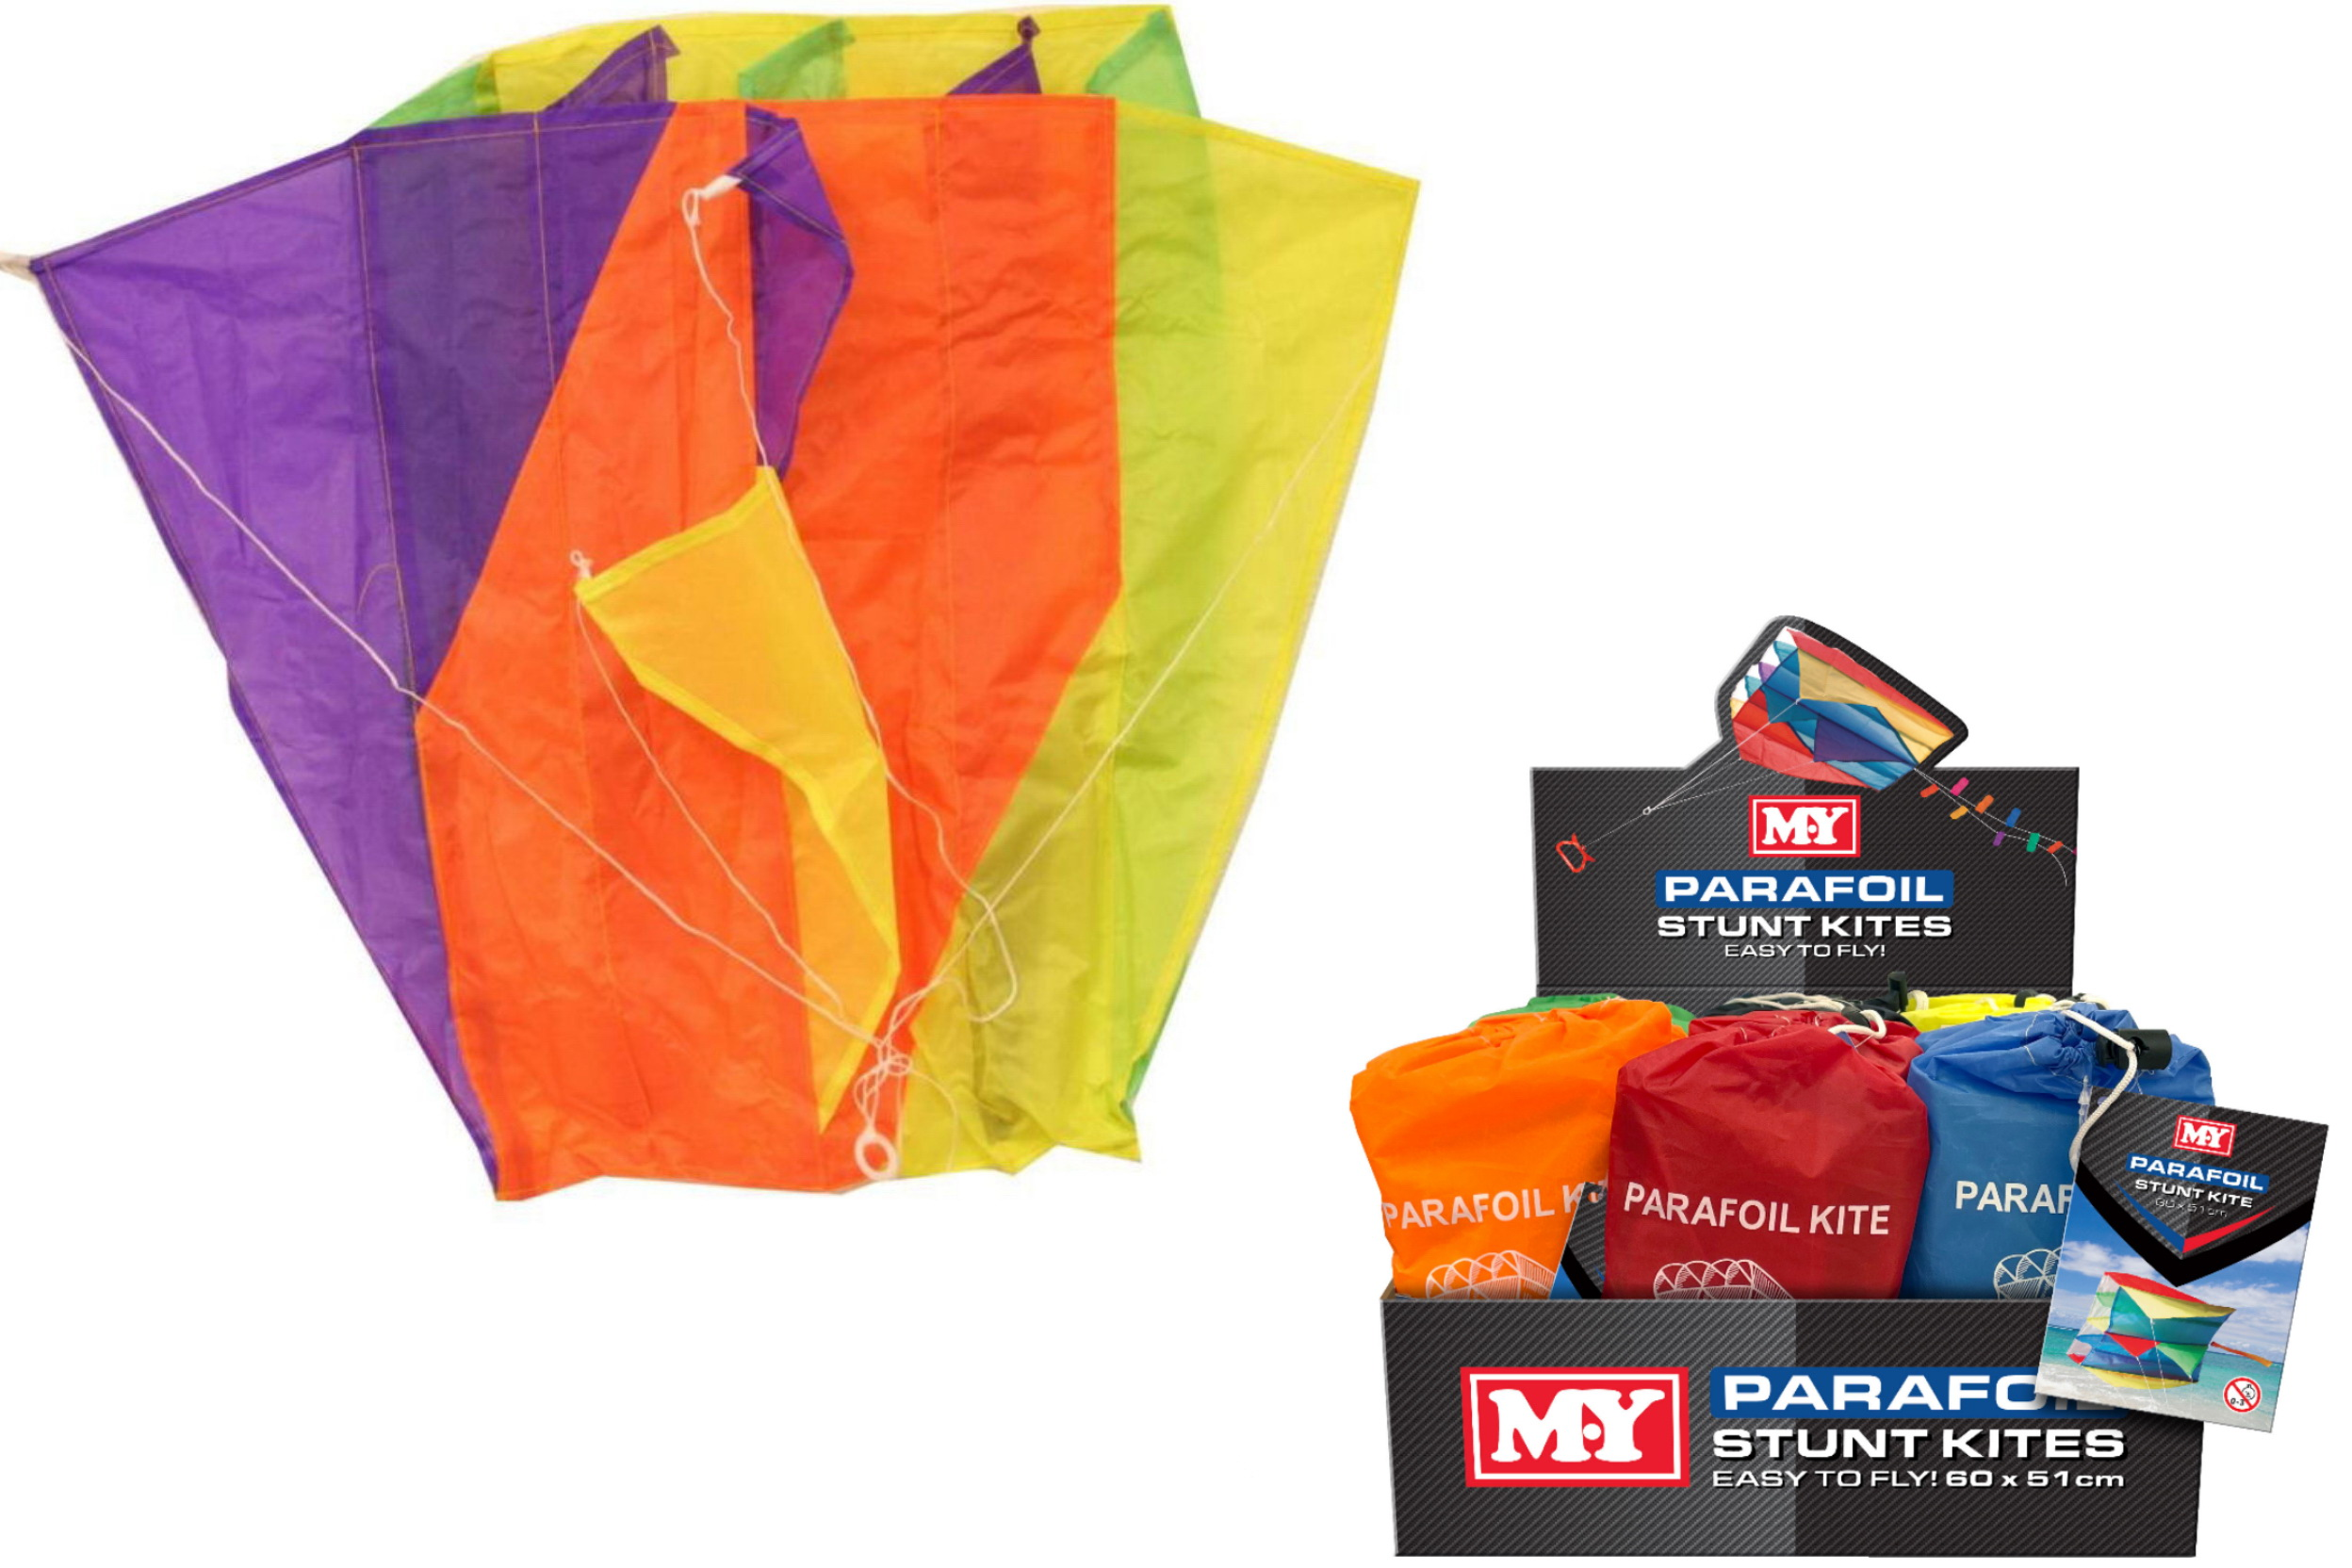 60cm x 51cm Nylon Parafoil Kite Bag In Display Box